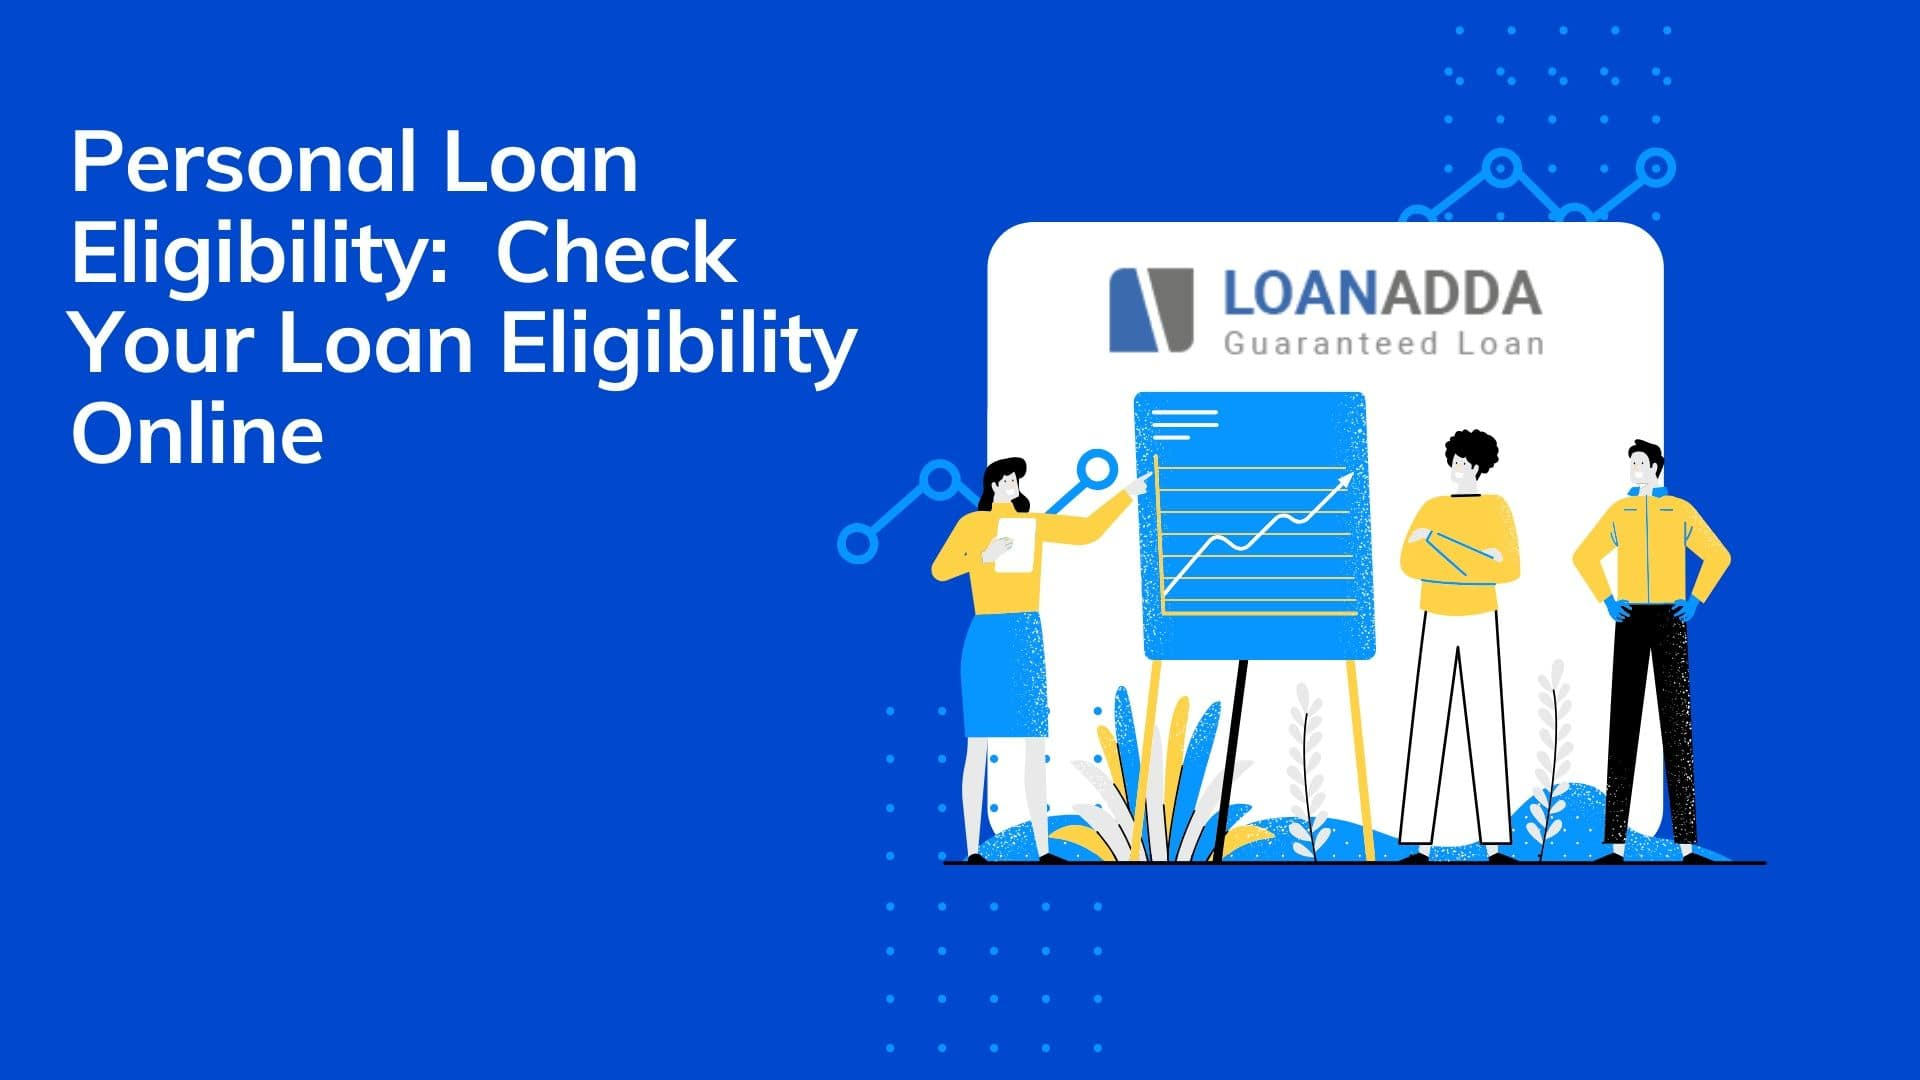 Personal Loan Eligibility:  Check Your Loan Eligibility Online